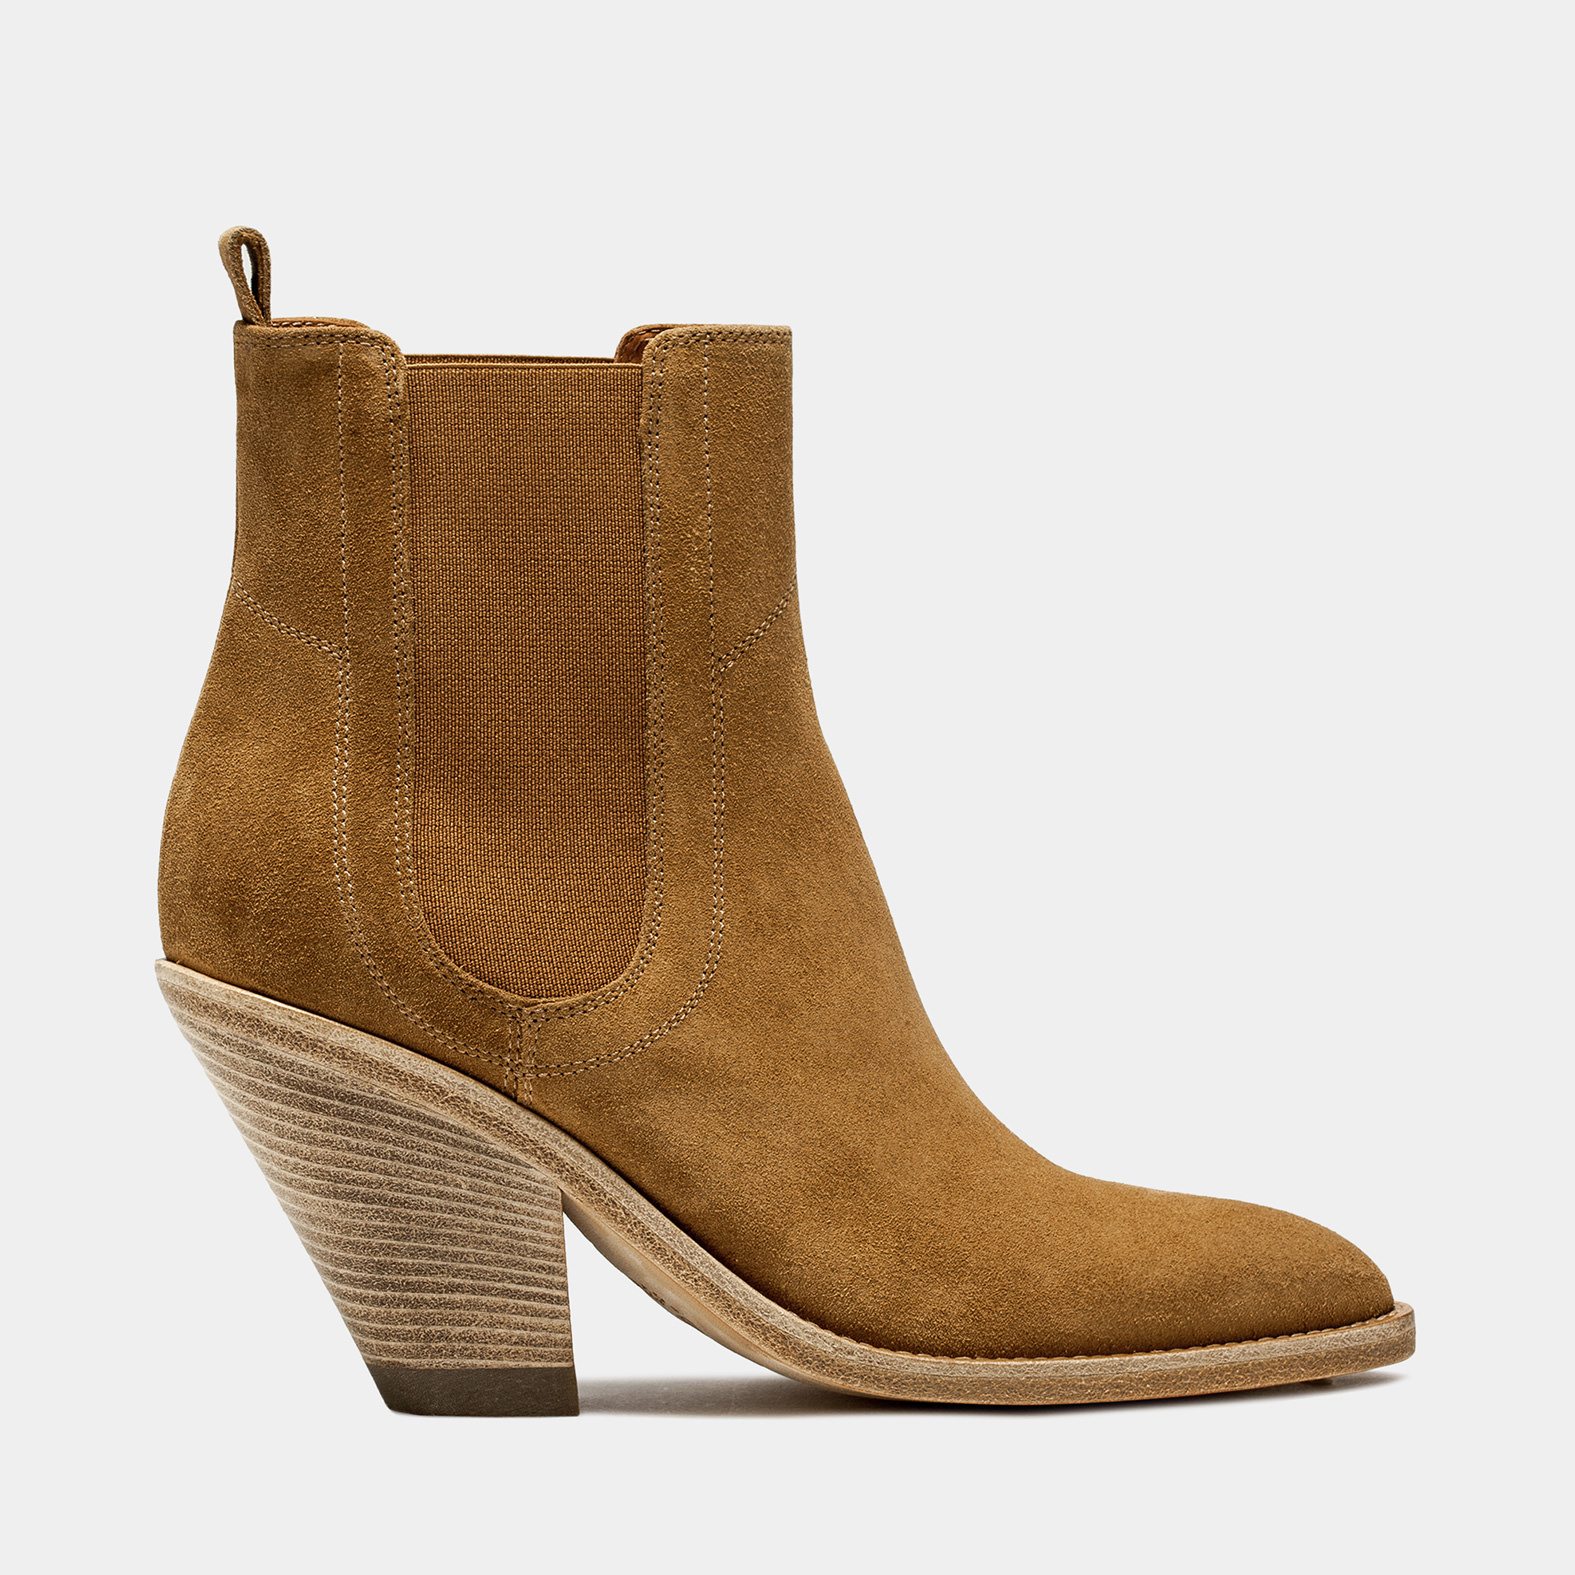 BUTTERO: STIVALE JANE TEXANO IN SUEDE RAME